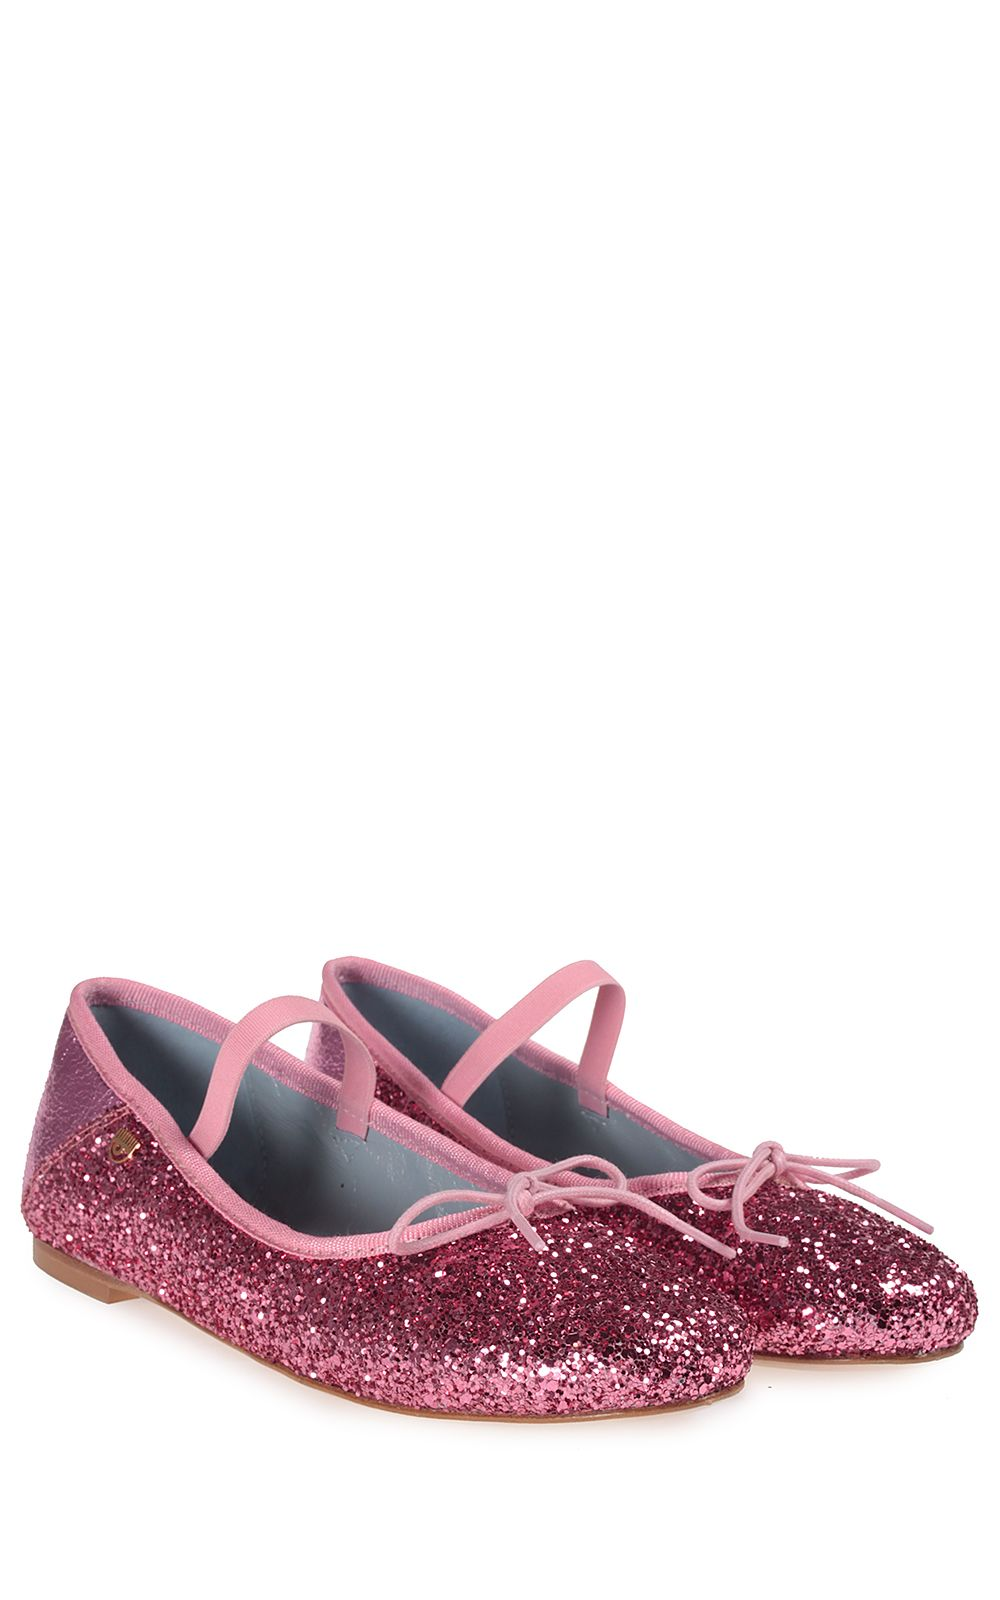 chiara ferragni chiara ferragni glittered ballet flat fuxia women 39 s flat shoes italist. Black Bedroom Furniture Sets. Home Design Ideas